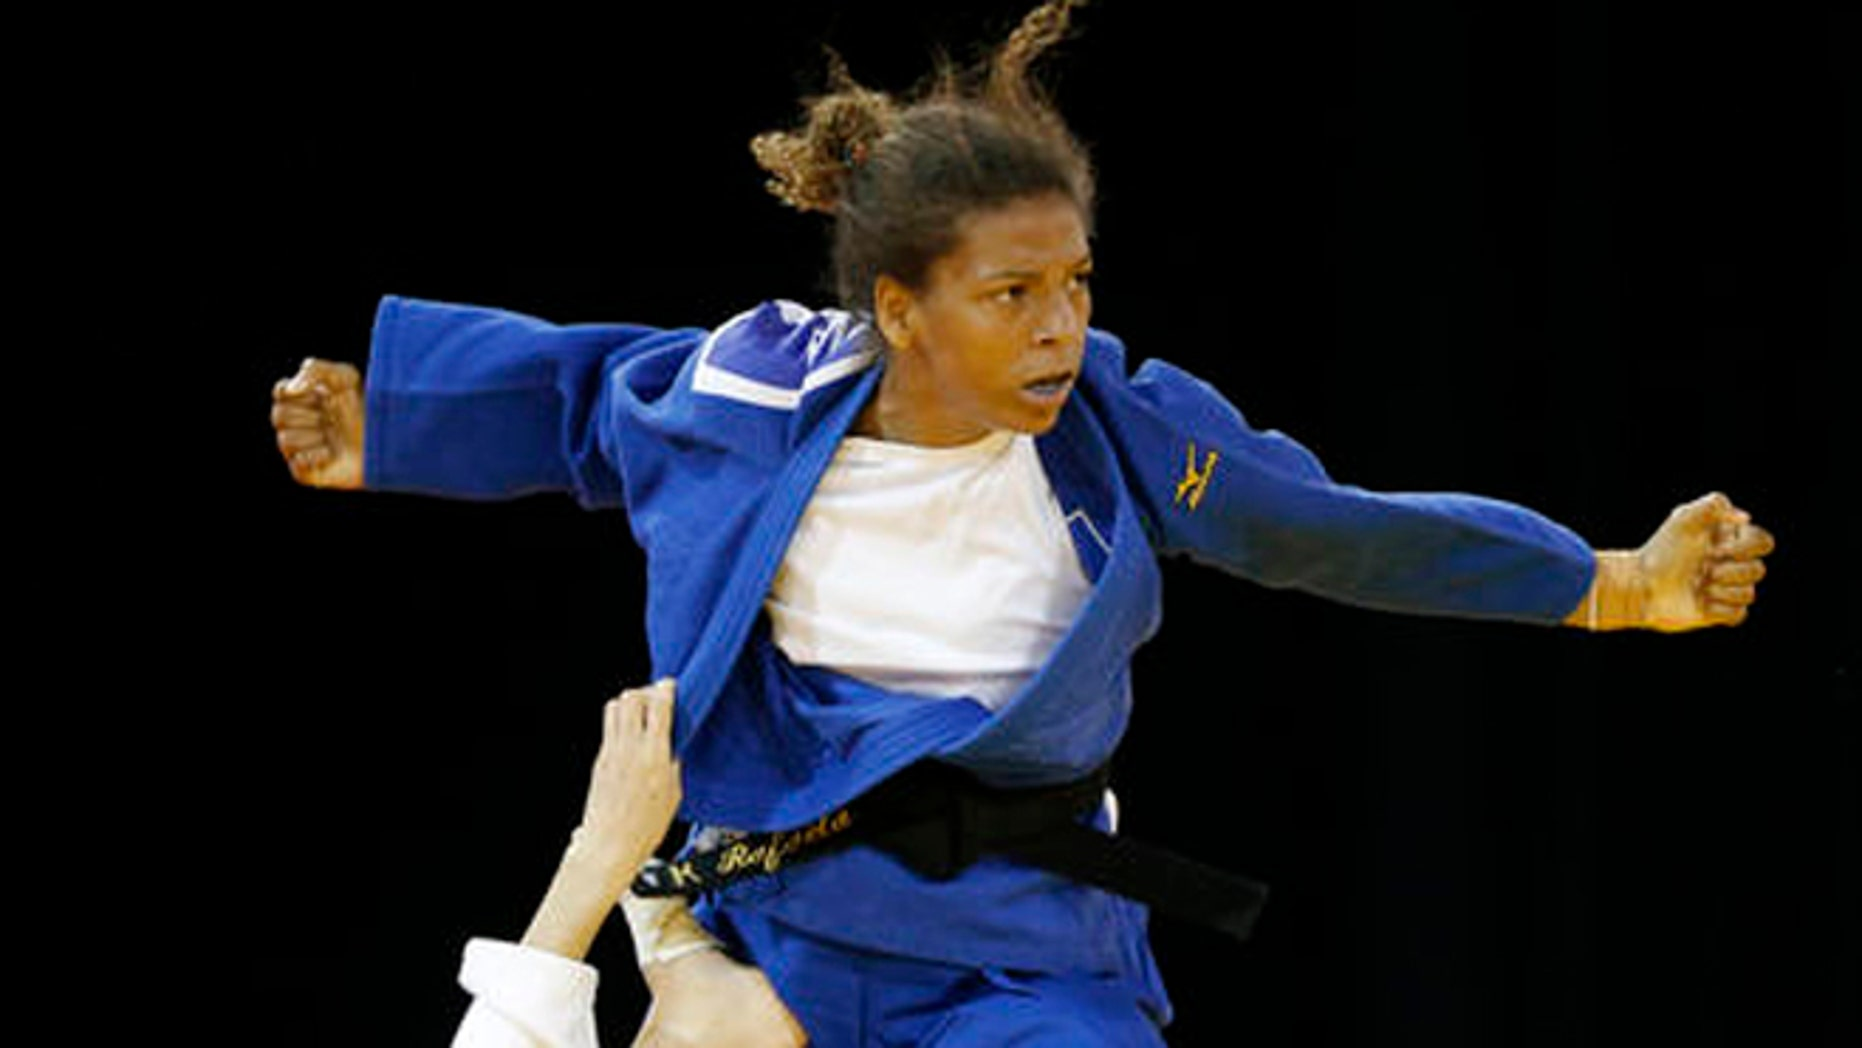 FILE - In this July 12, 2015 file photo, Brazil's Rafaela Silva, top, competes against Venezuela's Anriquelis Barrios during a women's -57kg bronze medal judo match at the Pan Am Games, in Mississauga, Ontario. Silva hoped to get an Olympic gold medal four years ago in London. Disqualified in her Olympic judo match and eliminated from the chance of winning a medal, Brazils Silva thought shed find refuge in sympathetic text messages from fans in her country. Instead, heres what she found: The place for a monkey is in a cage. You are not an Olympian. (AP Photo/Julio Cortez, File)